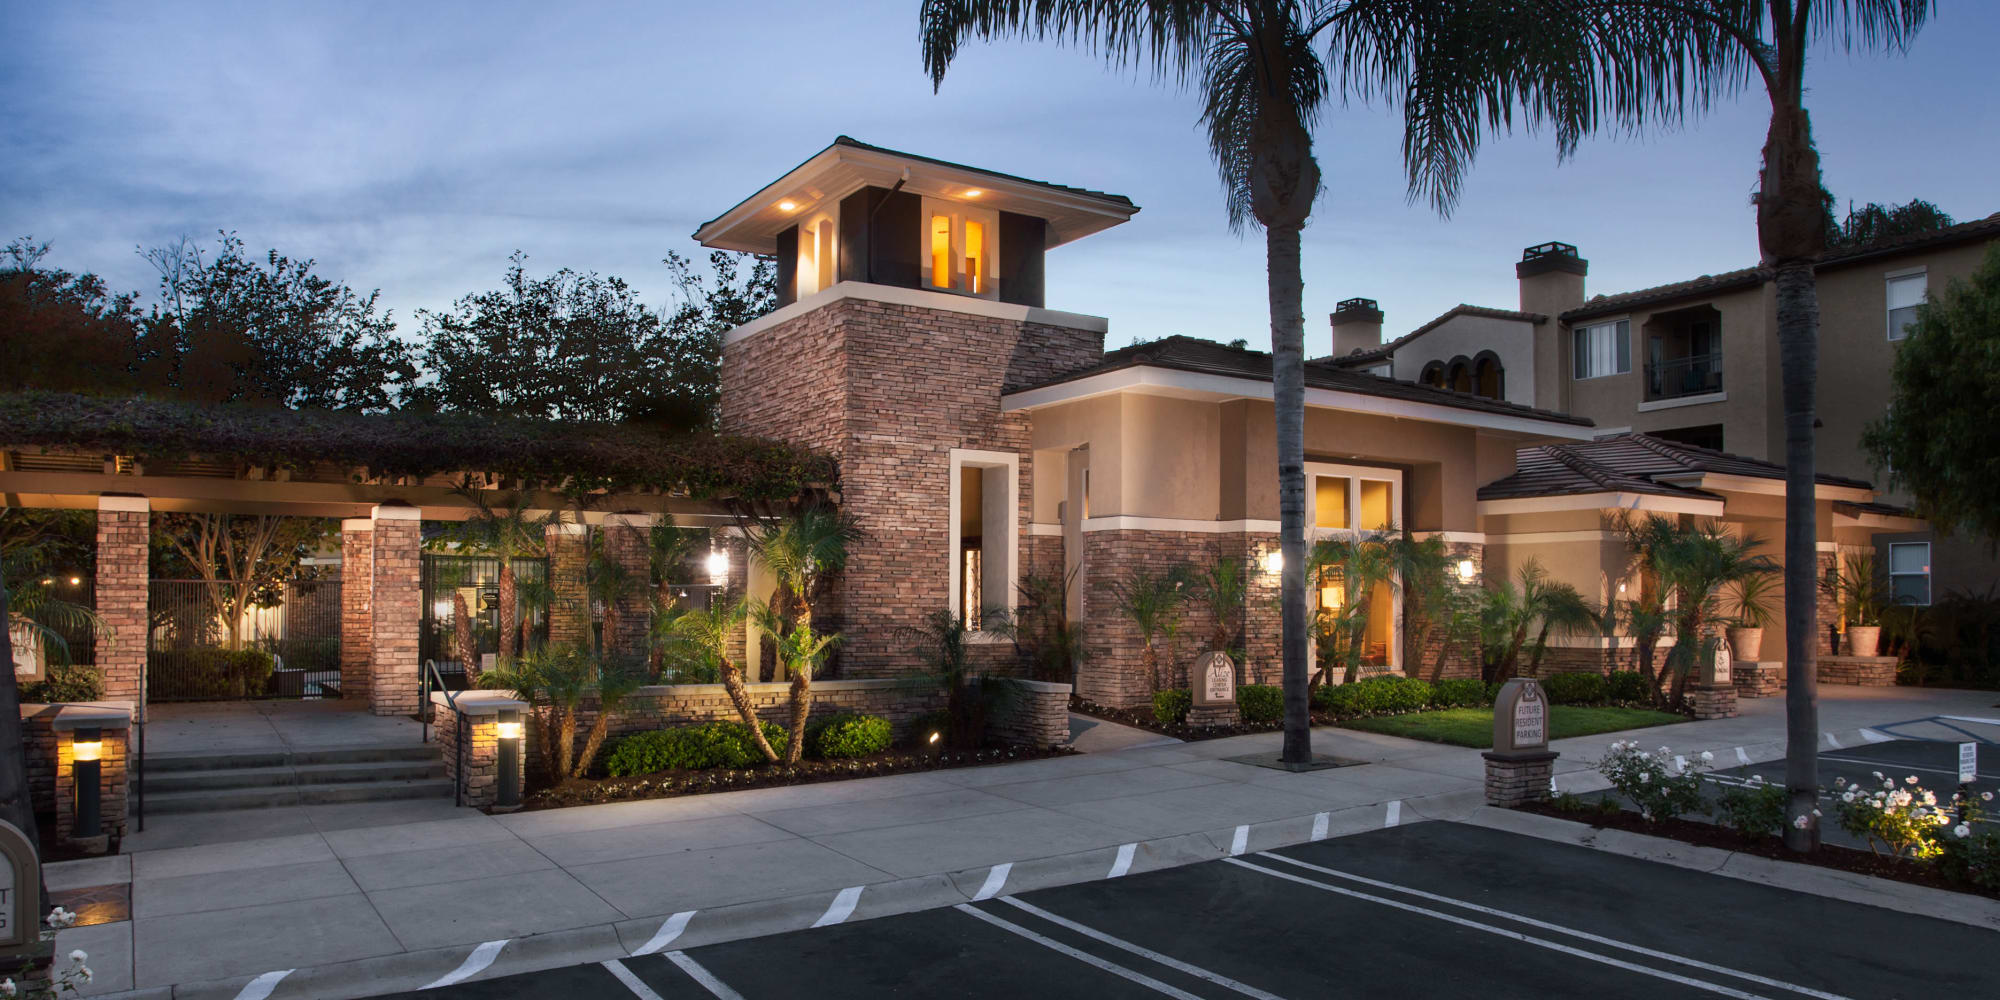 Apartments at Alize at Aliso Viejo Apartment Homes in Aliso Viejo, California